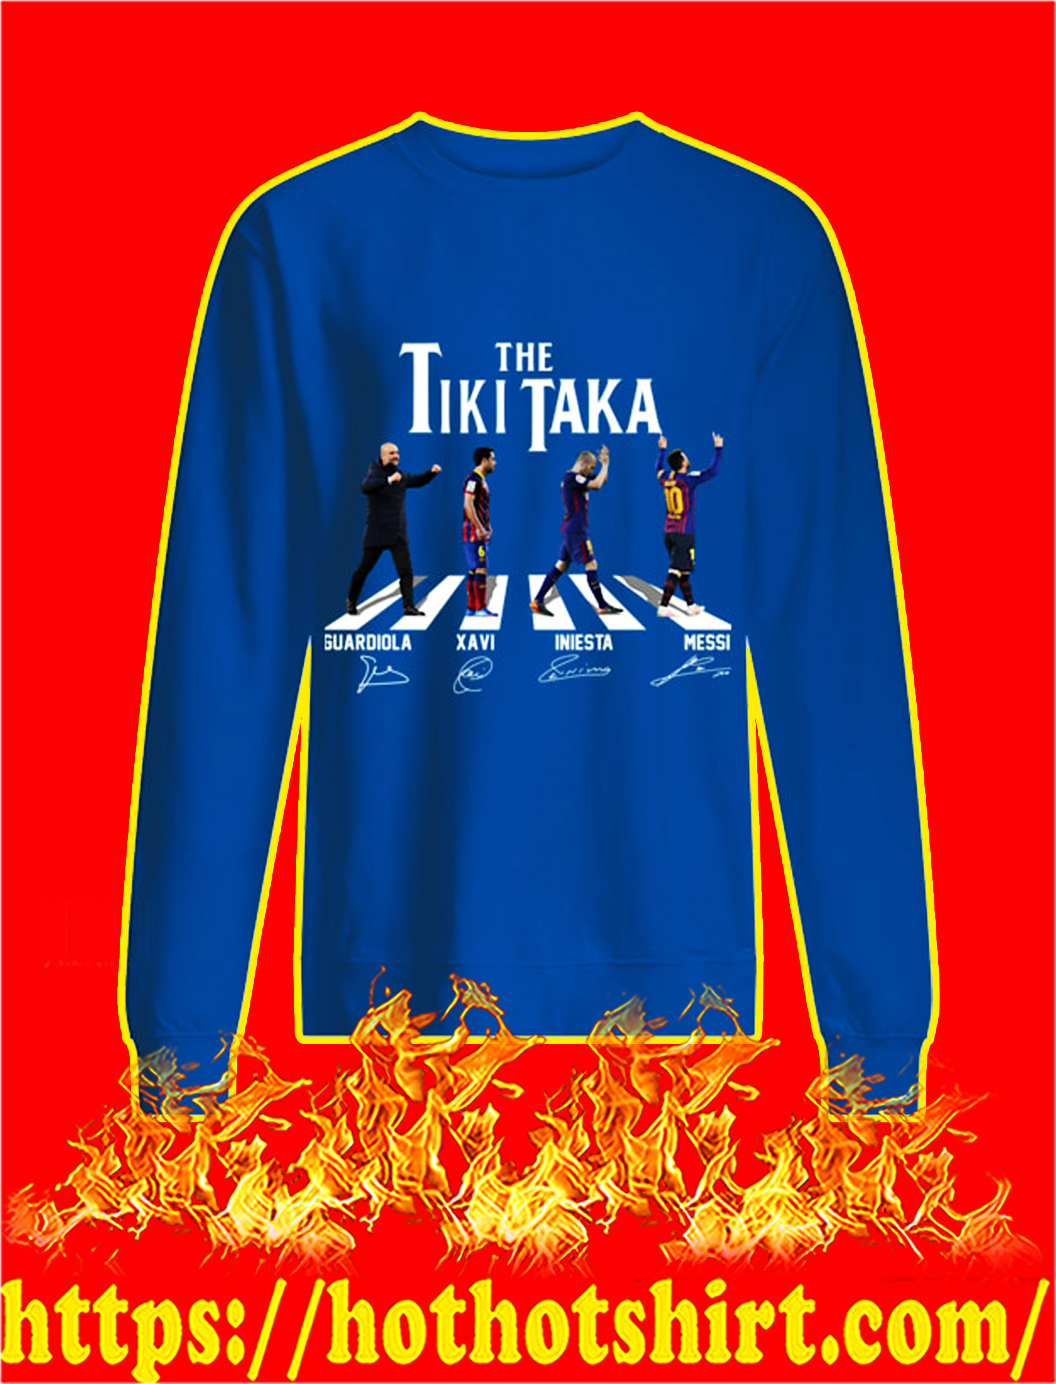 The Tiki Taka Barcelona Abbey Road Signature sweatshirt